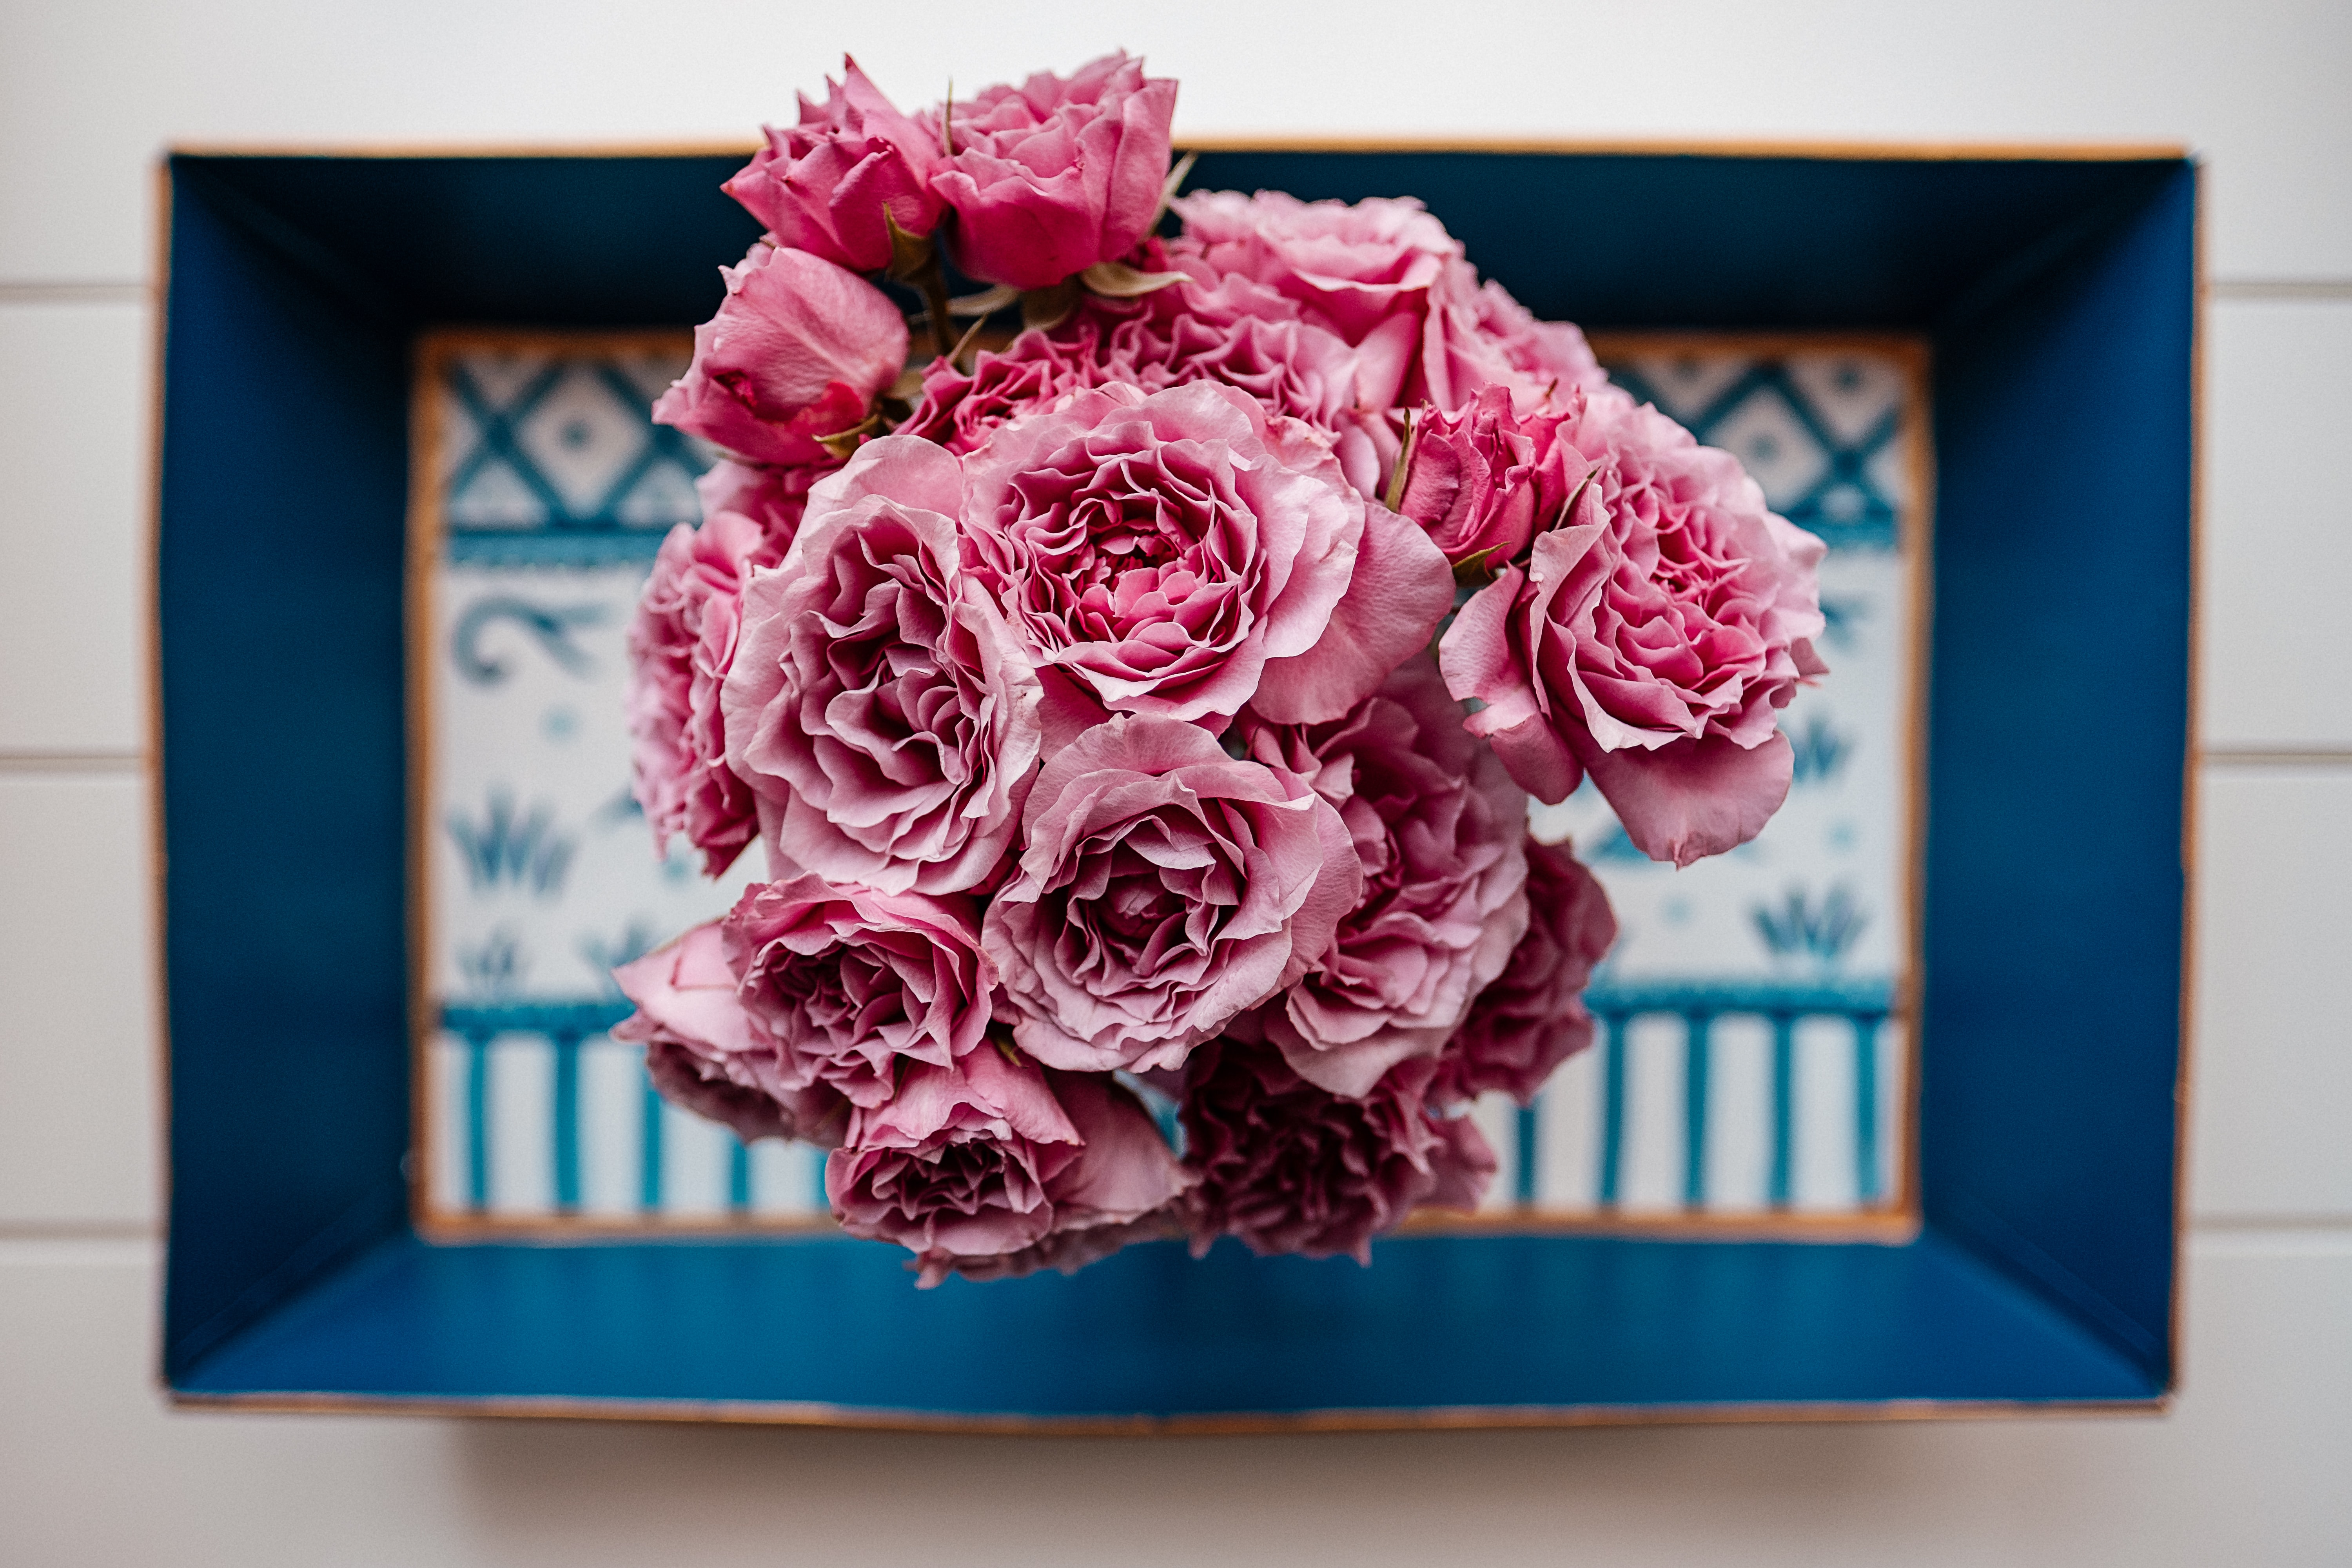 bouquet of pink rose flowers